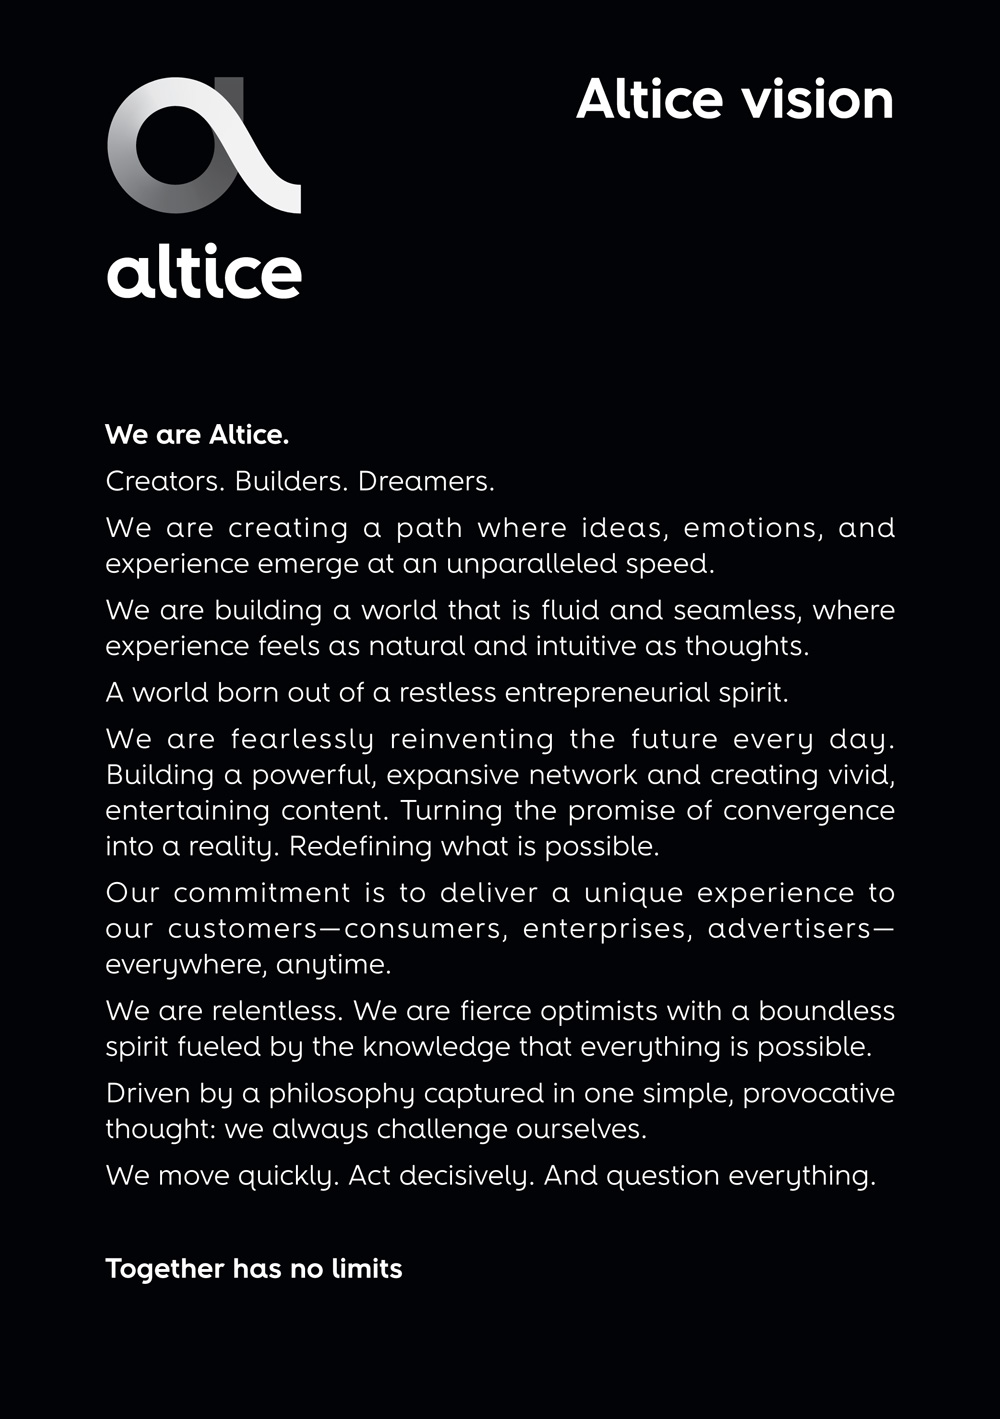 New Logo and Identity for Altice by Publicis Groupe and Turner Duckworth